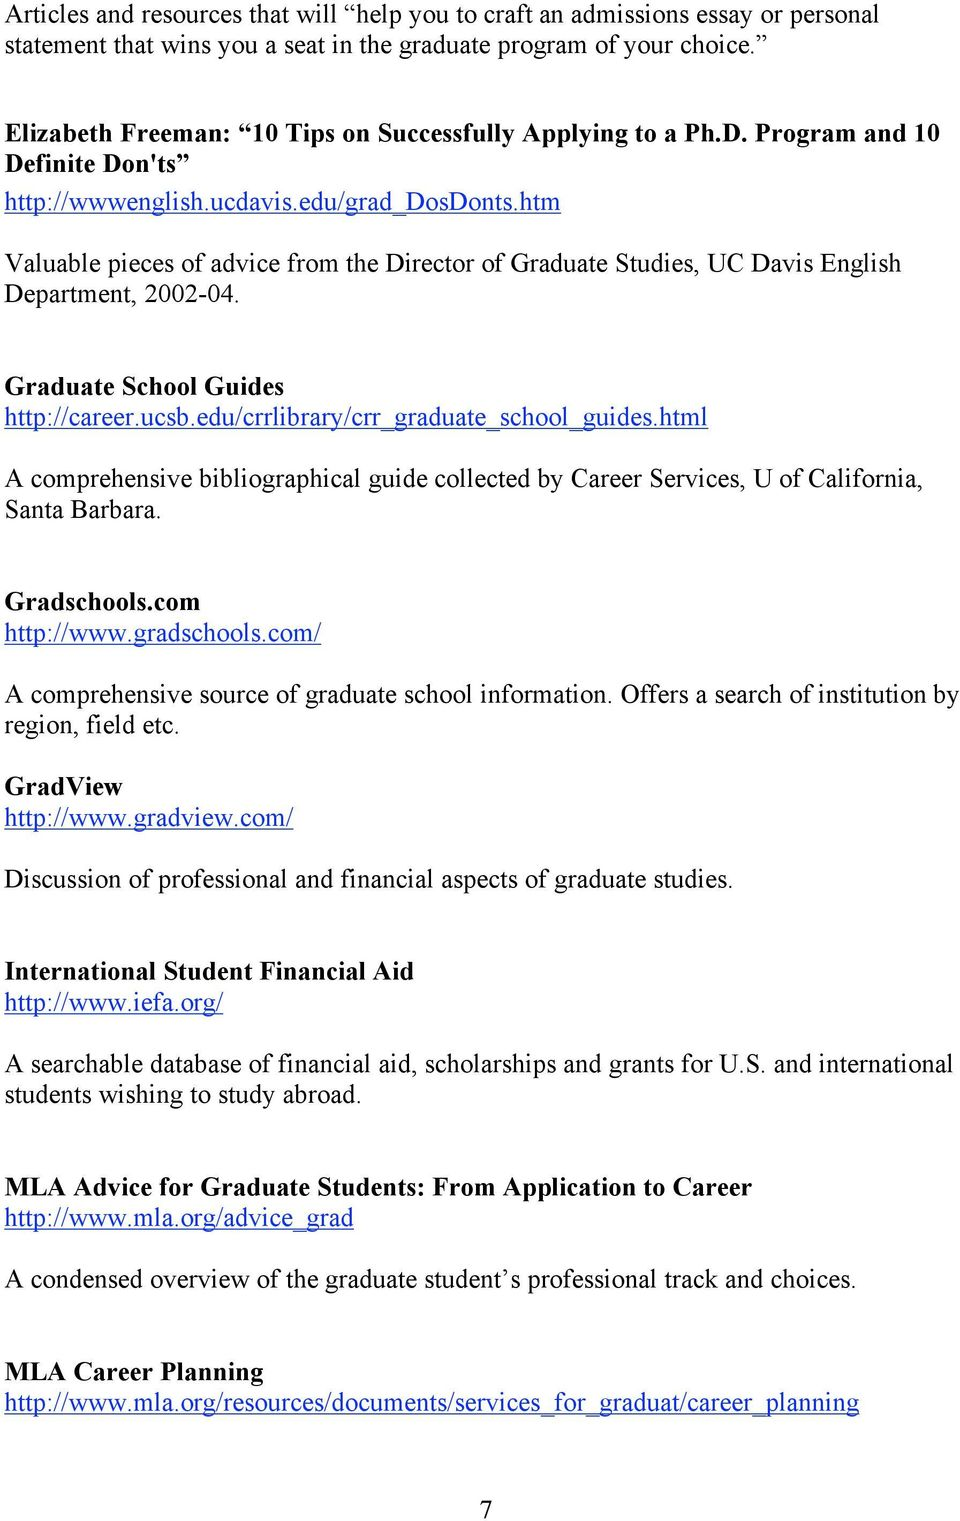 htm Valuable pieces of advice from the Director of Graduate Studies, UC Davis English Department, 2002-04. Graduate School Guides http://career.ucsb.edu/crrlibrary/crr_graduate_school_guides.